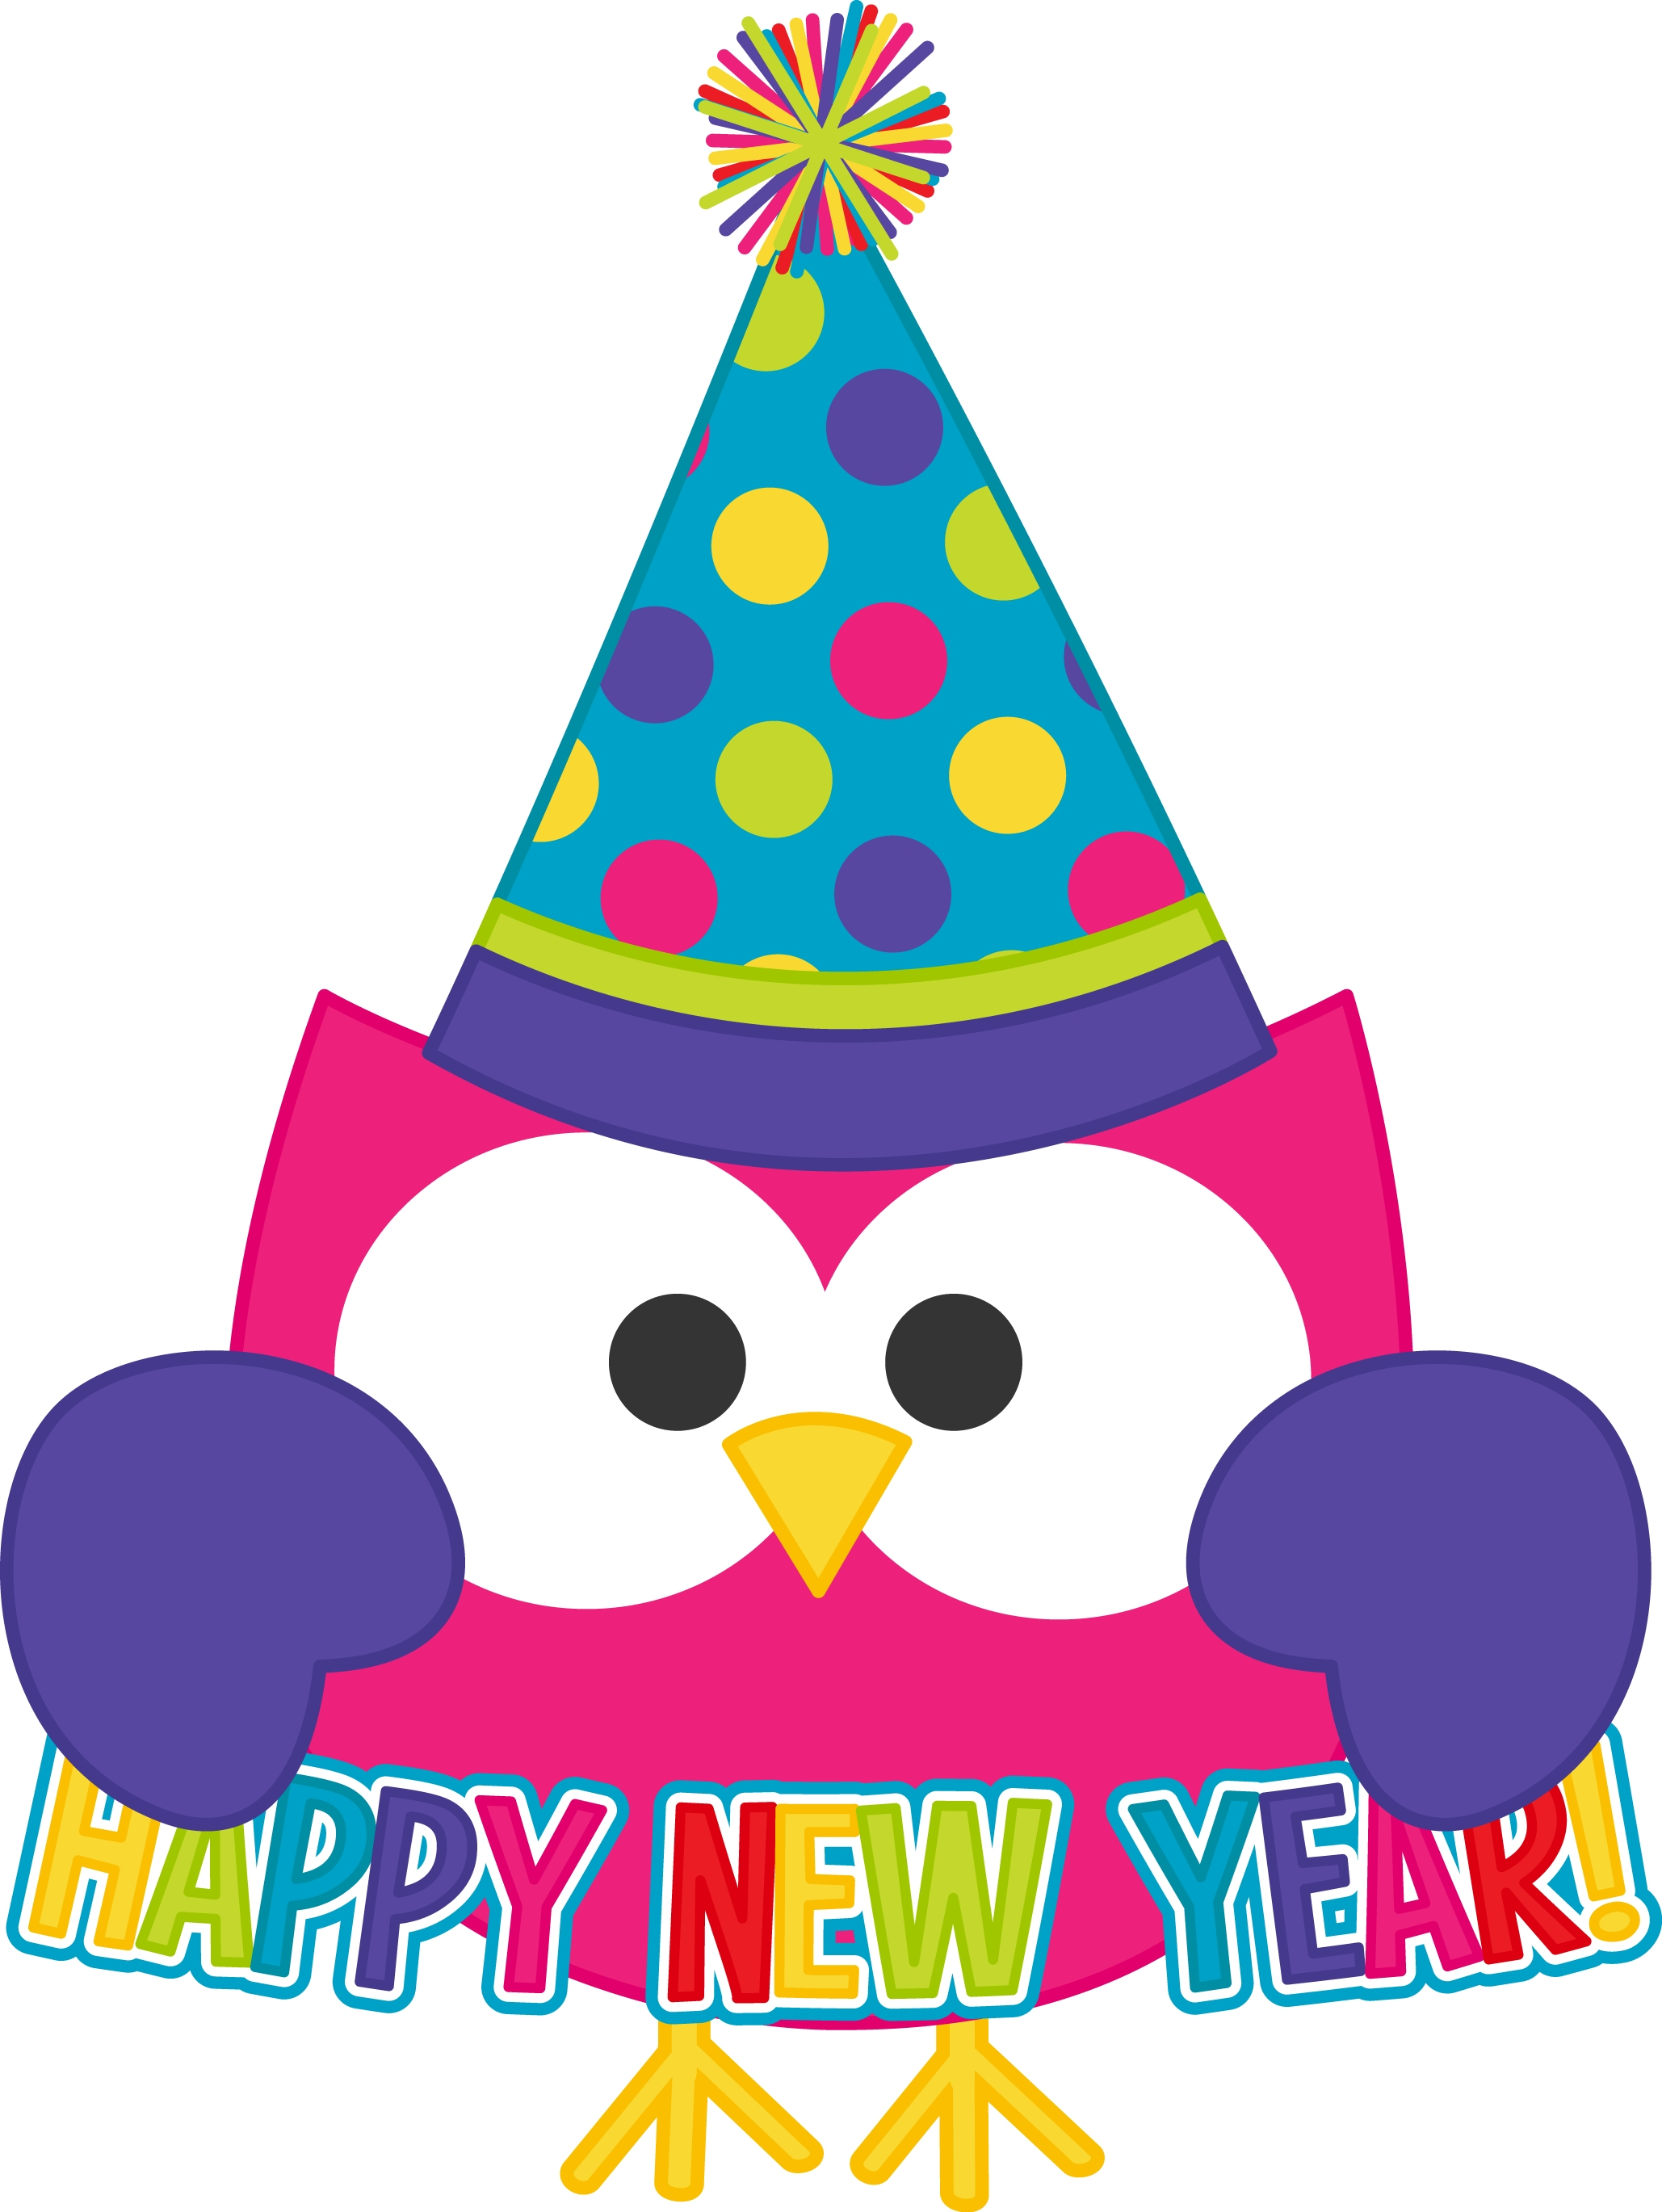 Free clipart happy new year greeting graphic freeuse library Free New Year Images, Download Free Clip Art, Free Clip Art on ... graphic freeuse library